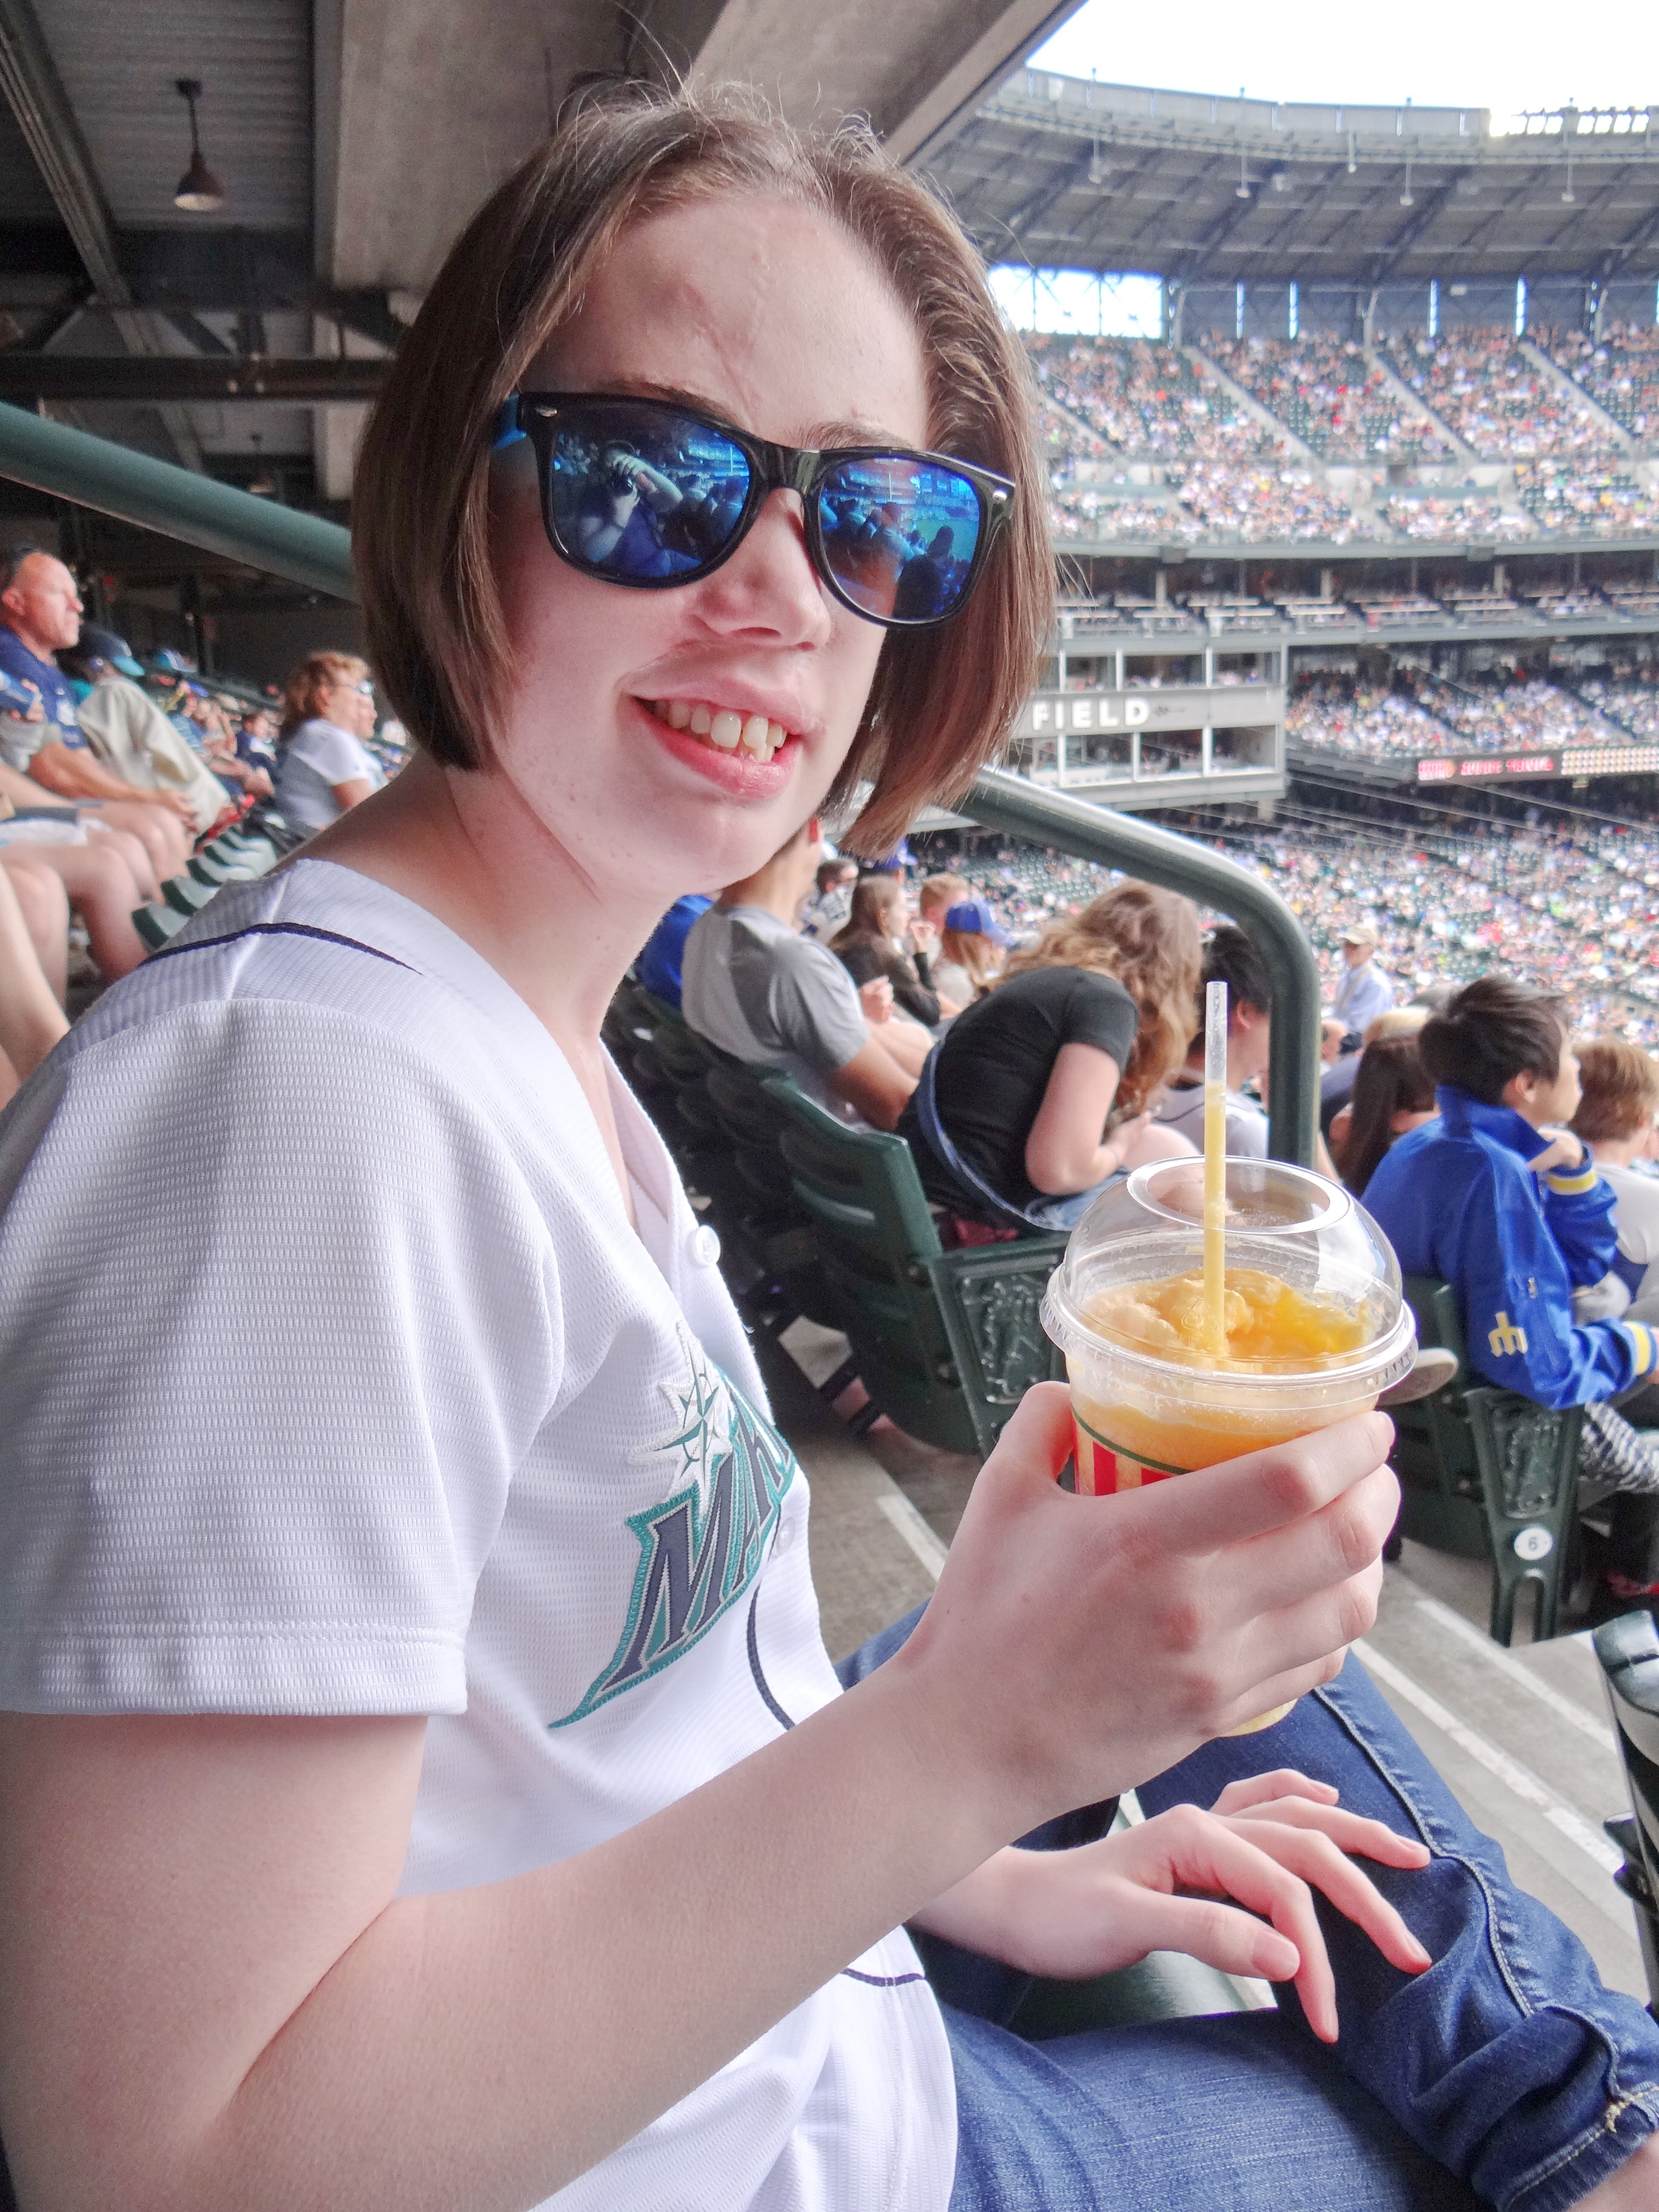 At Safeco Field with my Mariners